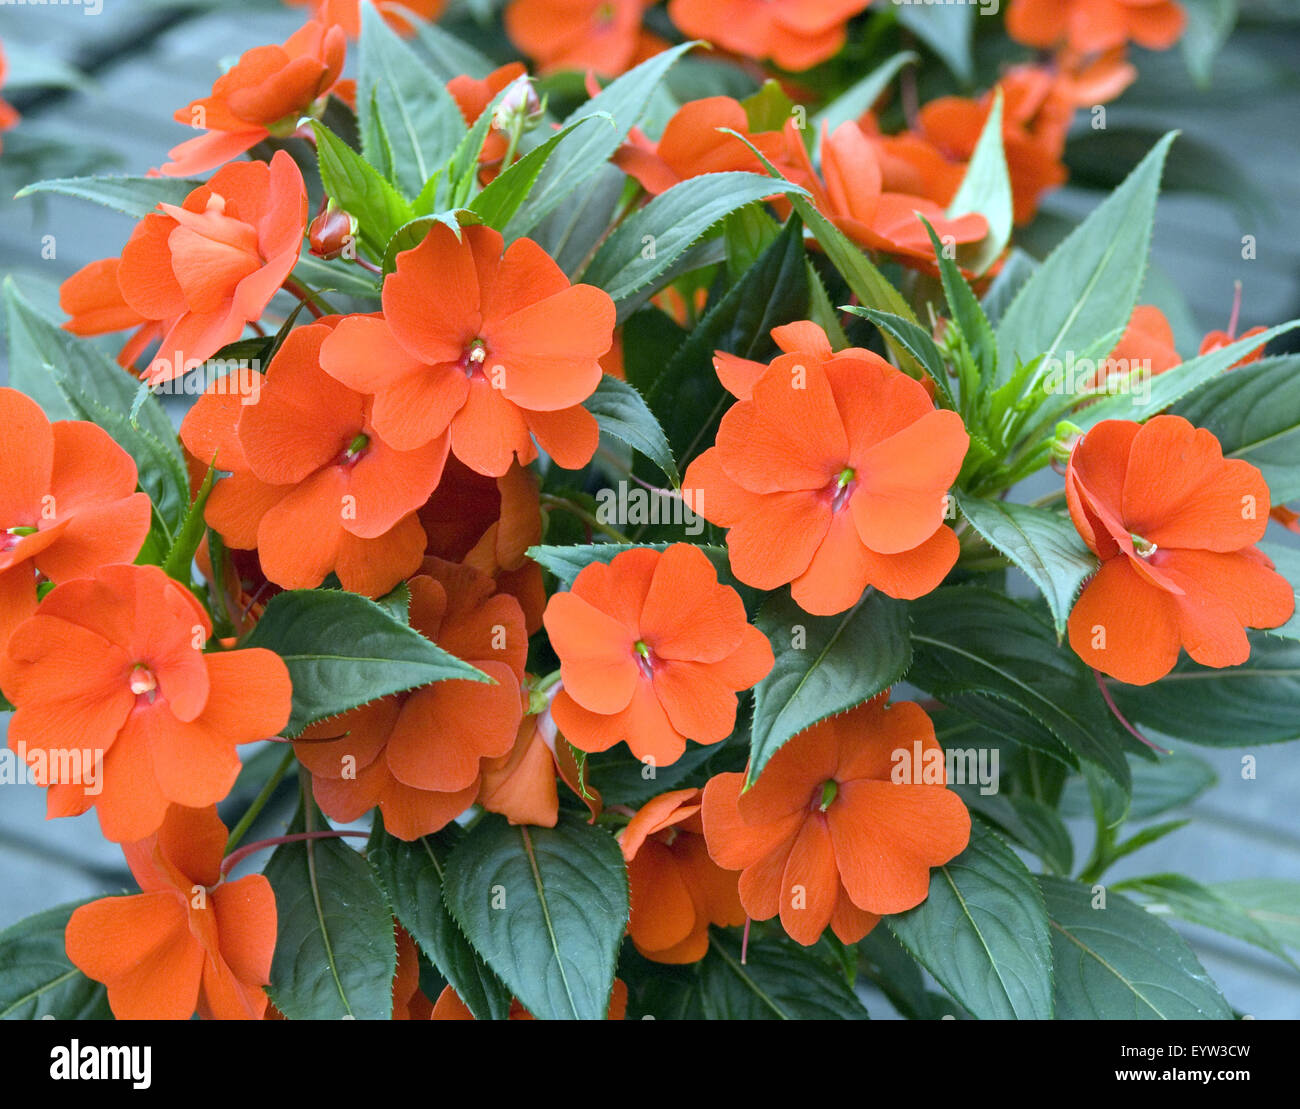 Impatiens-Neu-Guinea-Hybriden; Stock Photo